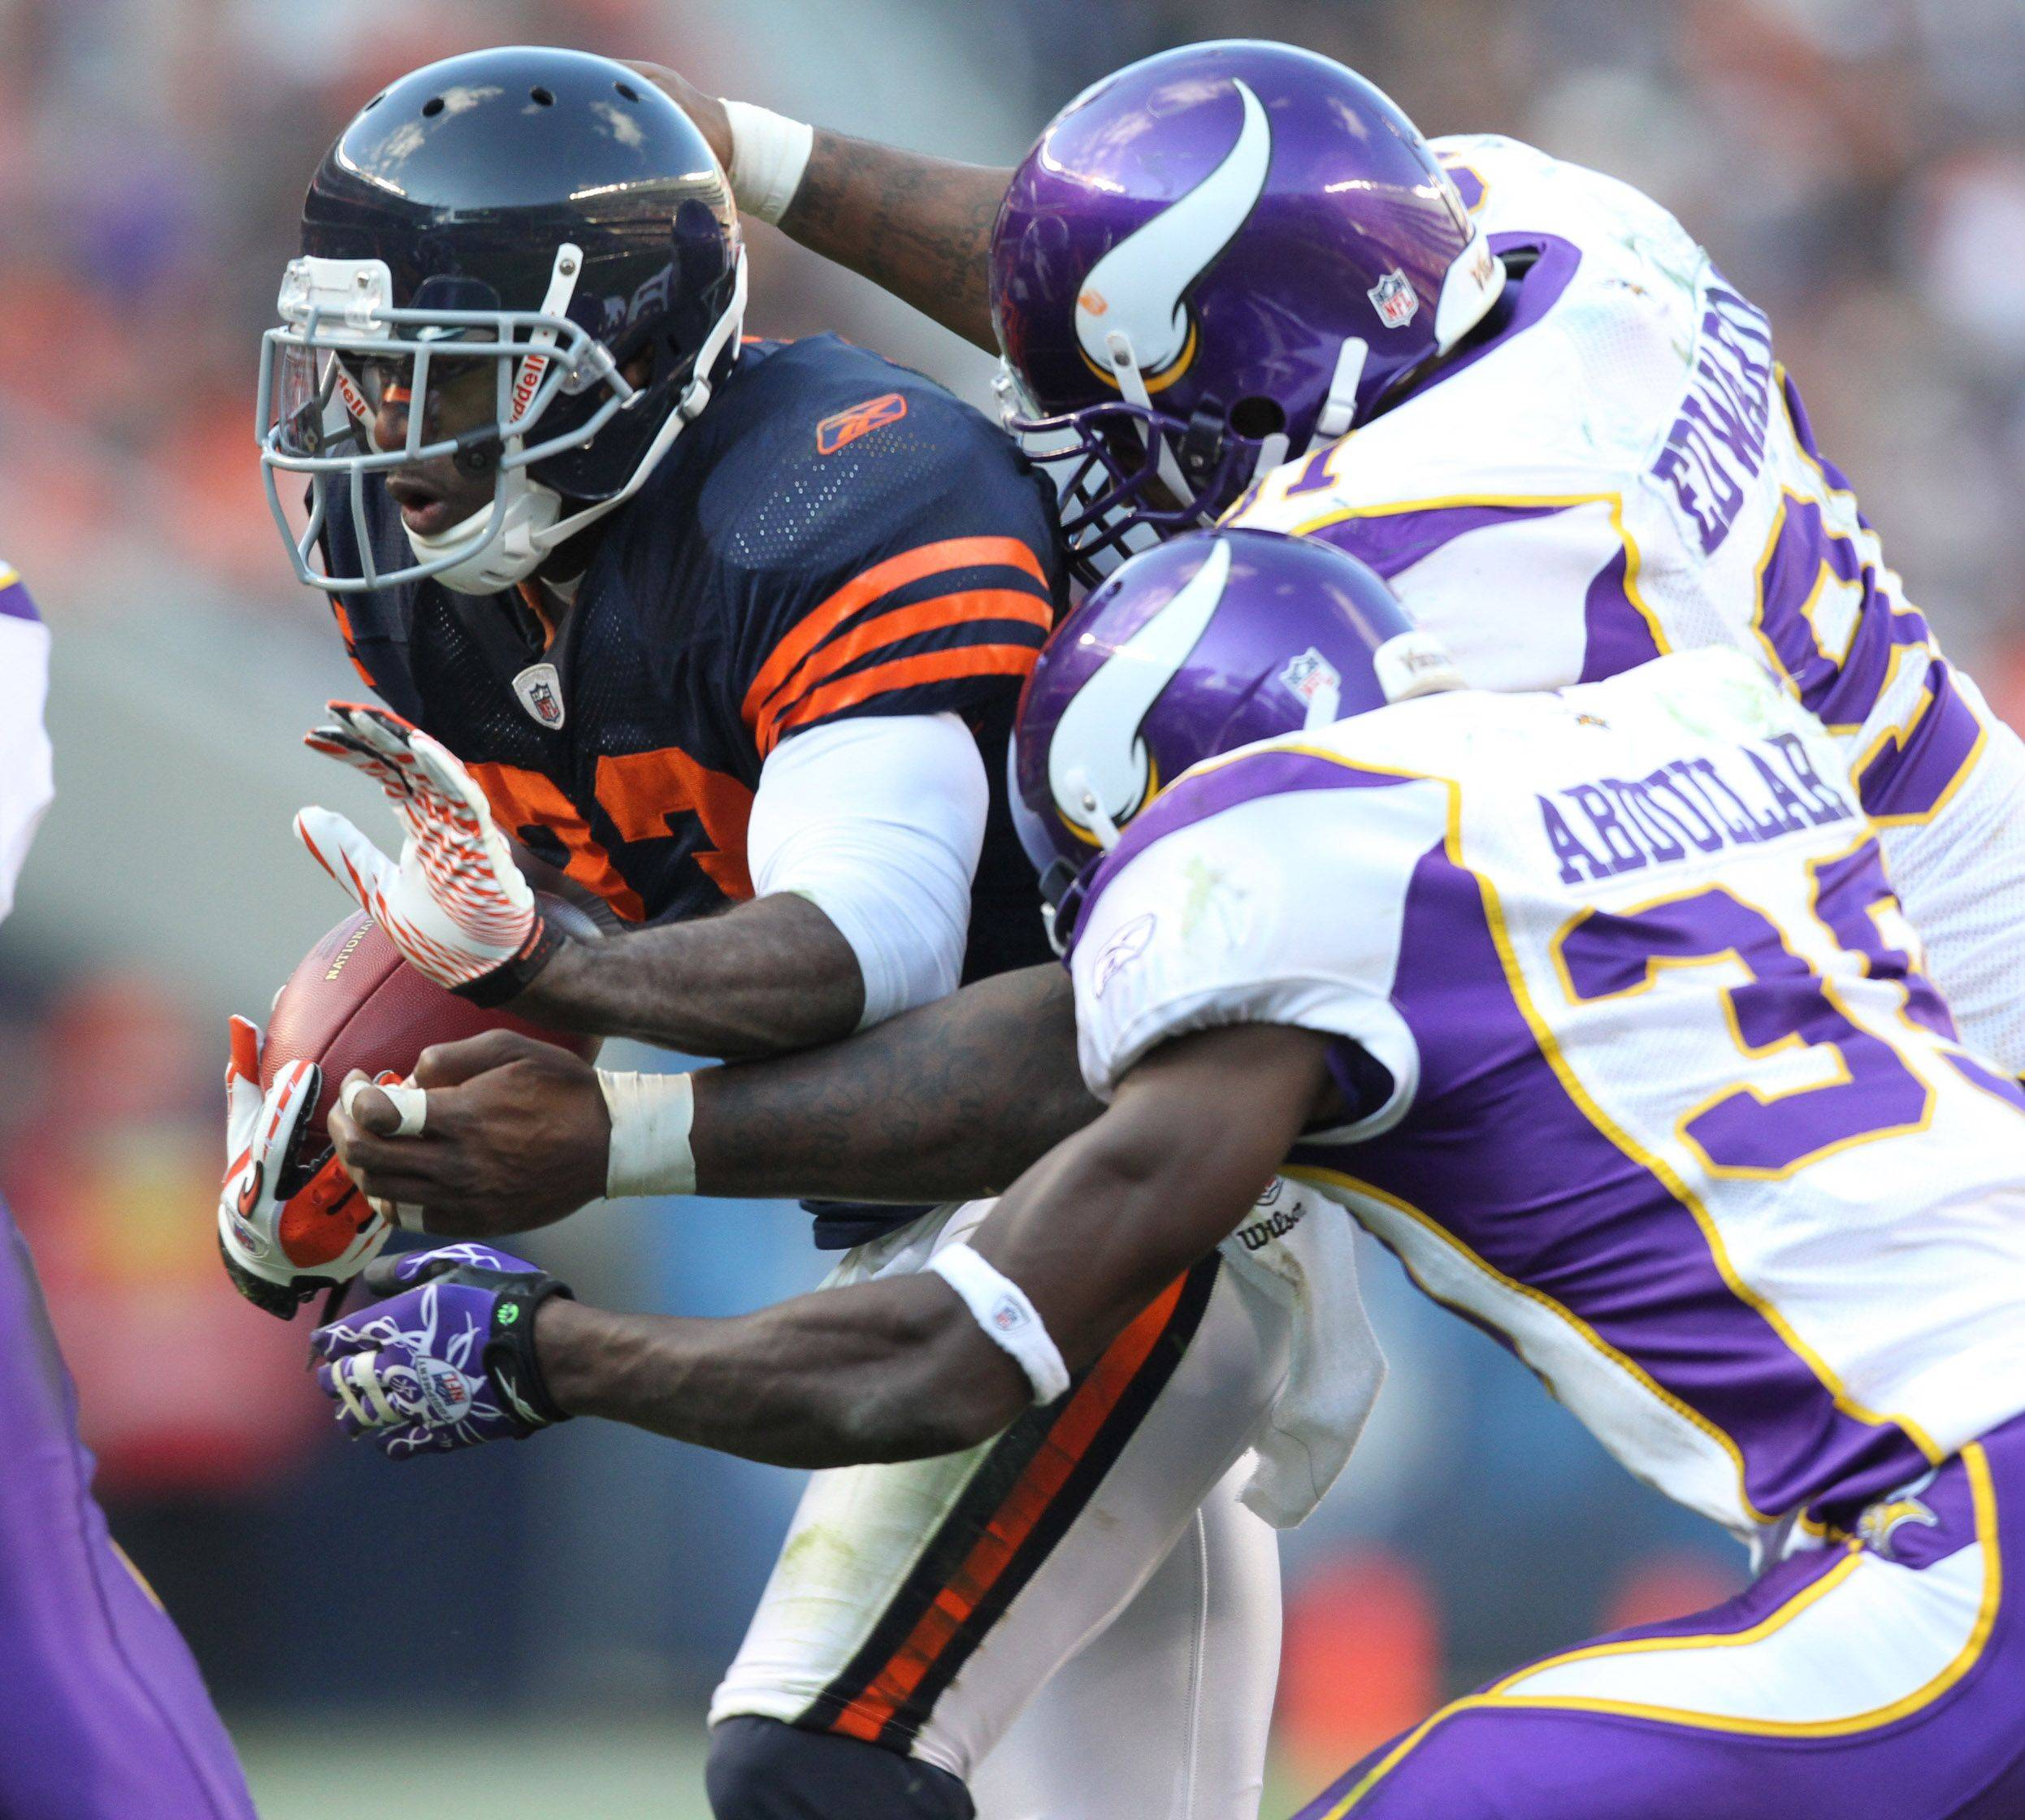 Chicago Bears's Devin Hester is pulled down during a punt return by Minnesota Vikings' Husain Abodullah and Ray Edwards in the second half.